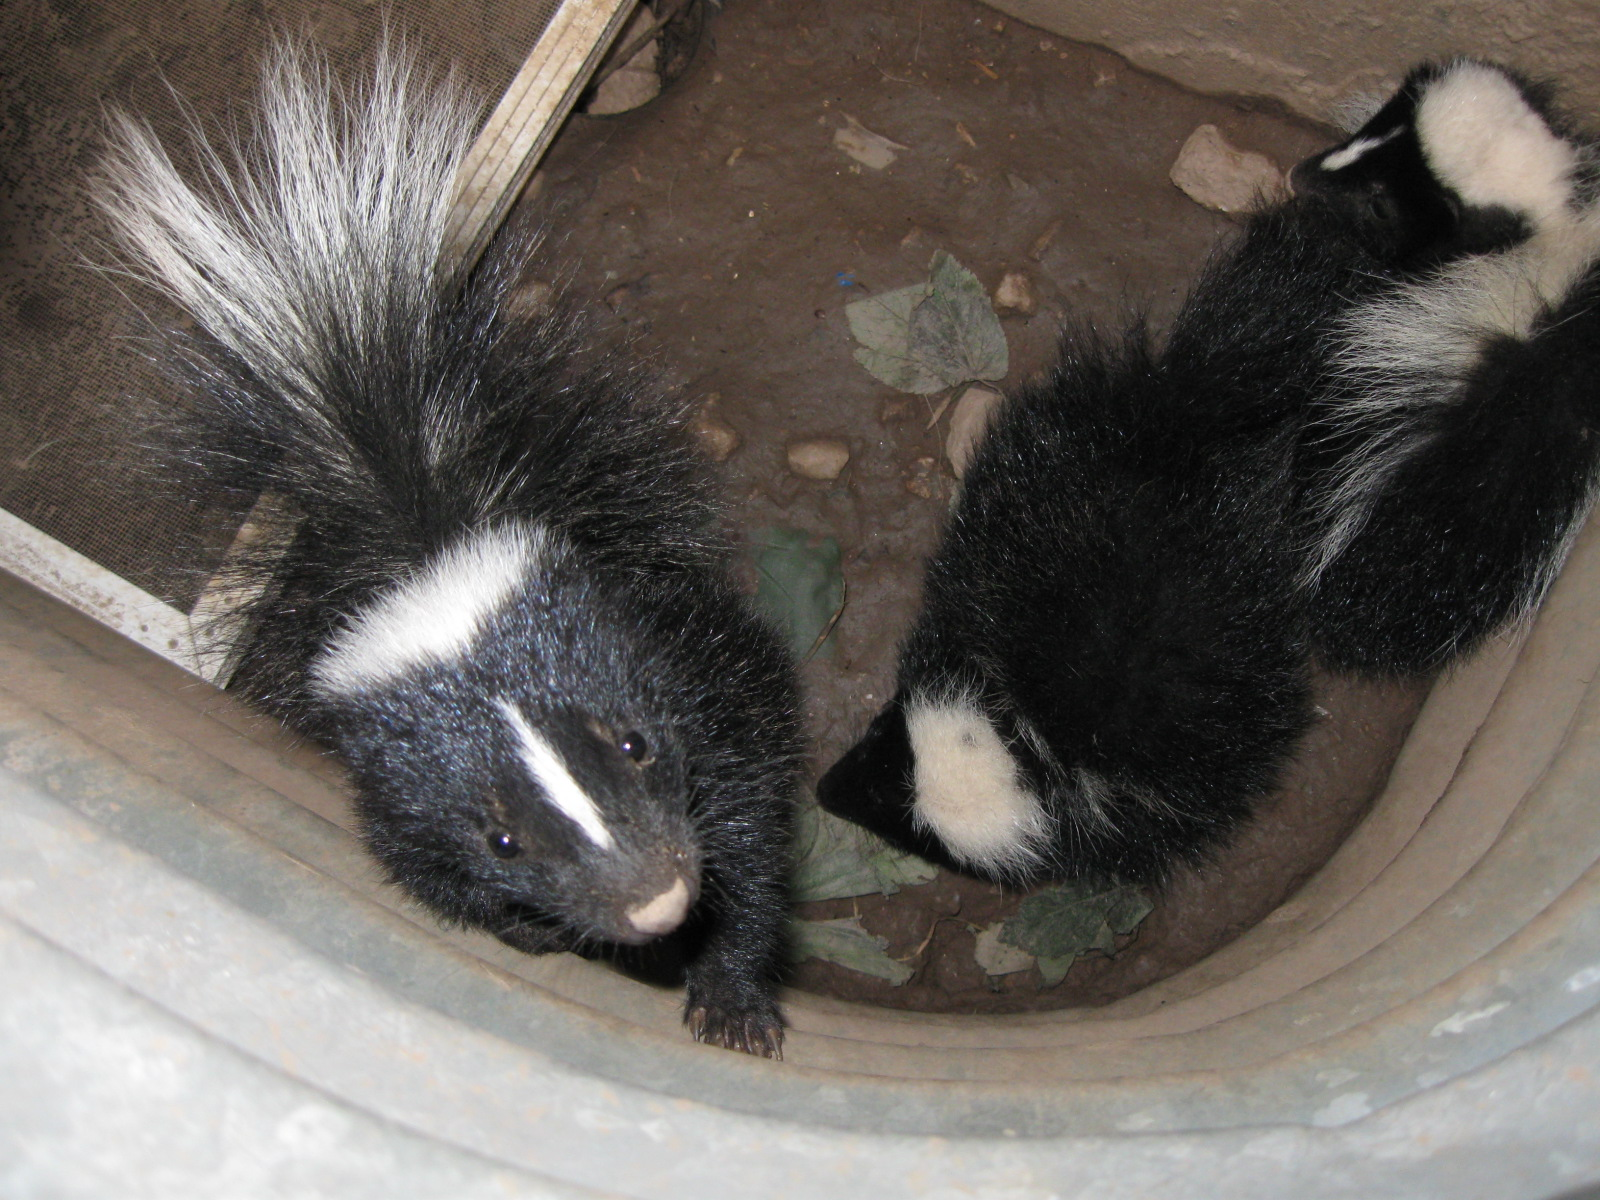 Flossy Skunks Why Skunks Are Attracted To Your Home Skedaddle Can Skunks Climb A Wall Can Skunks Climb A Wooden Fence houzz 01 Can Skunks Climb